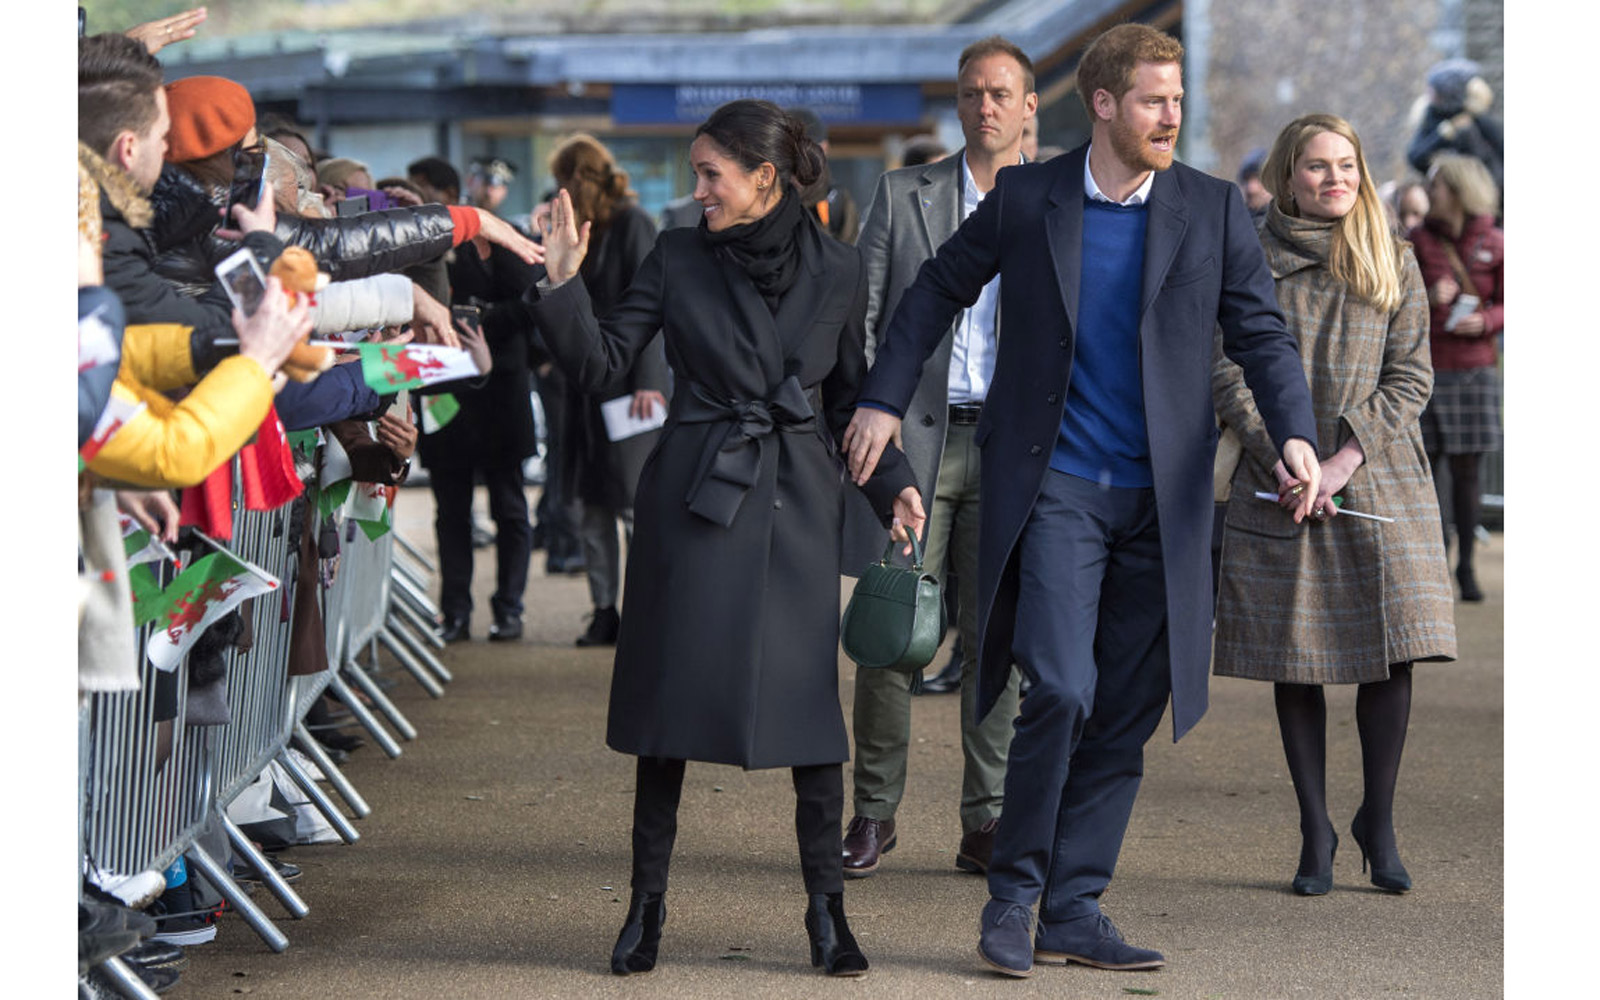 Britain's Prince Harry and fiancée US actress Meghan Markle greets well-wishers on arrival at Cardiff Castle in Cardiff, south Wales on January 18, 2018